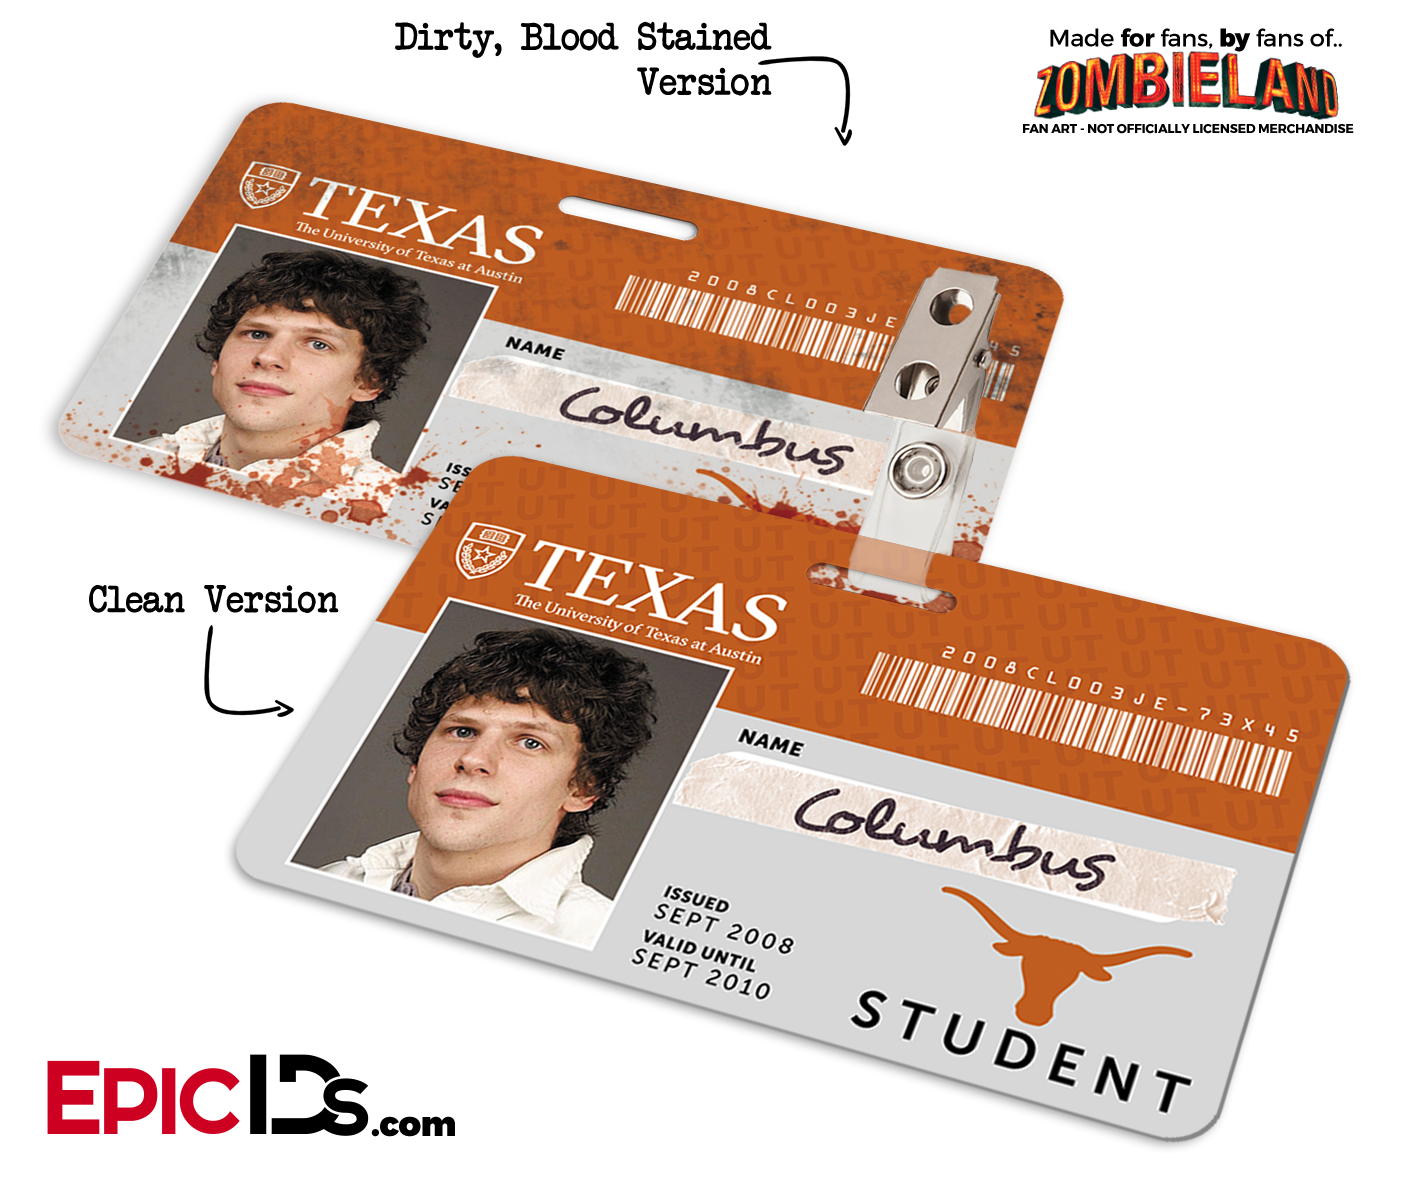 Texas University Epic Student Id Zombieland Ids Cosplay Of 'columbus' -